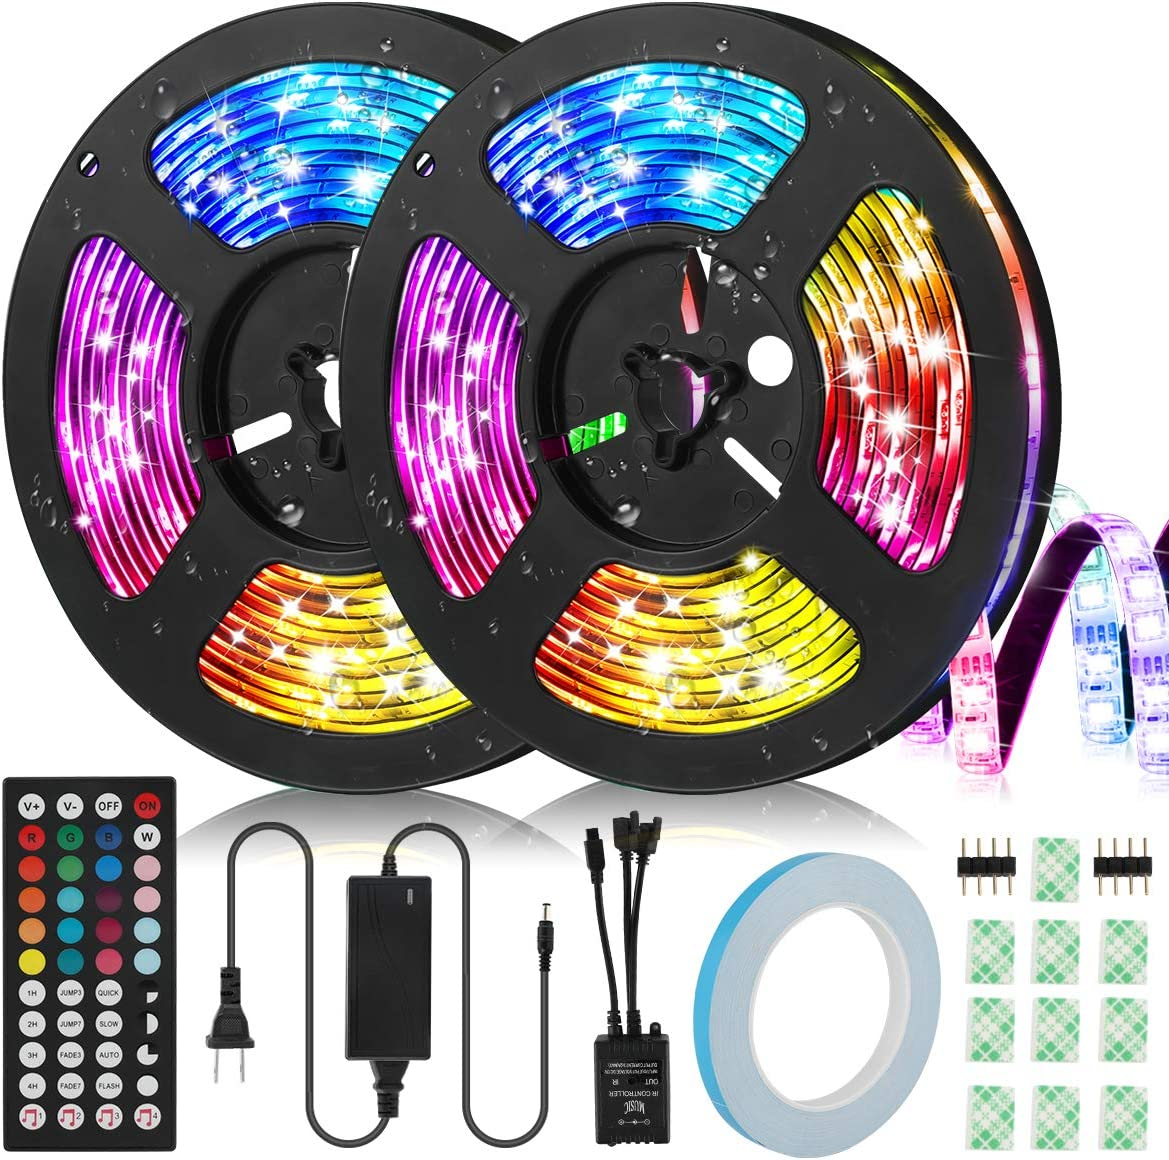 LED Strip Lights, IWVMEM RGB 32.8ft Flexible LED Strips, IP65 Waterproof, Music Sync Color Changing Light Kit, SMD 5050 LED Tape Lights with 44-Key IR Remote Control, for Home Party Decoration